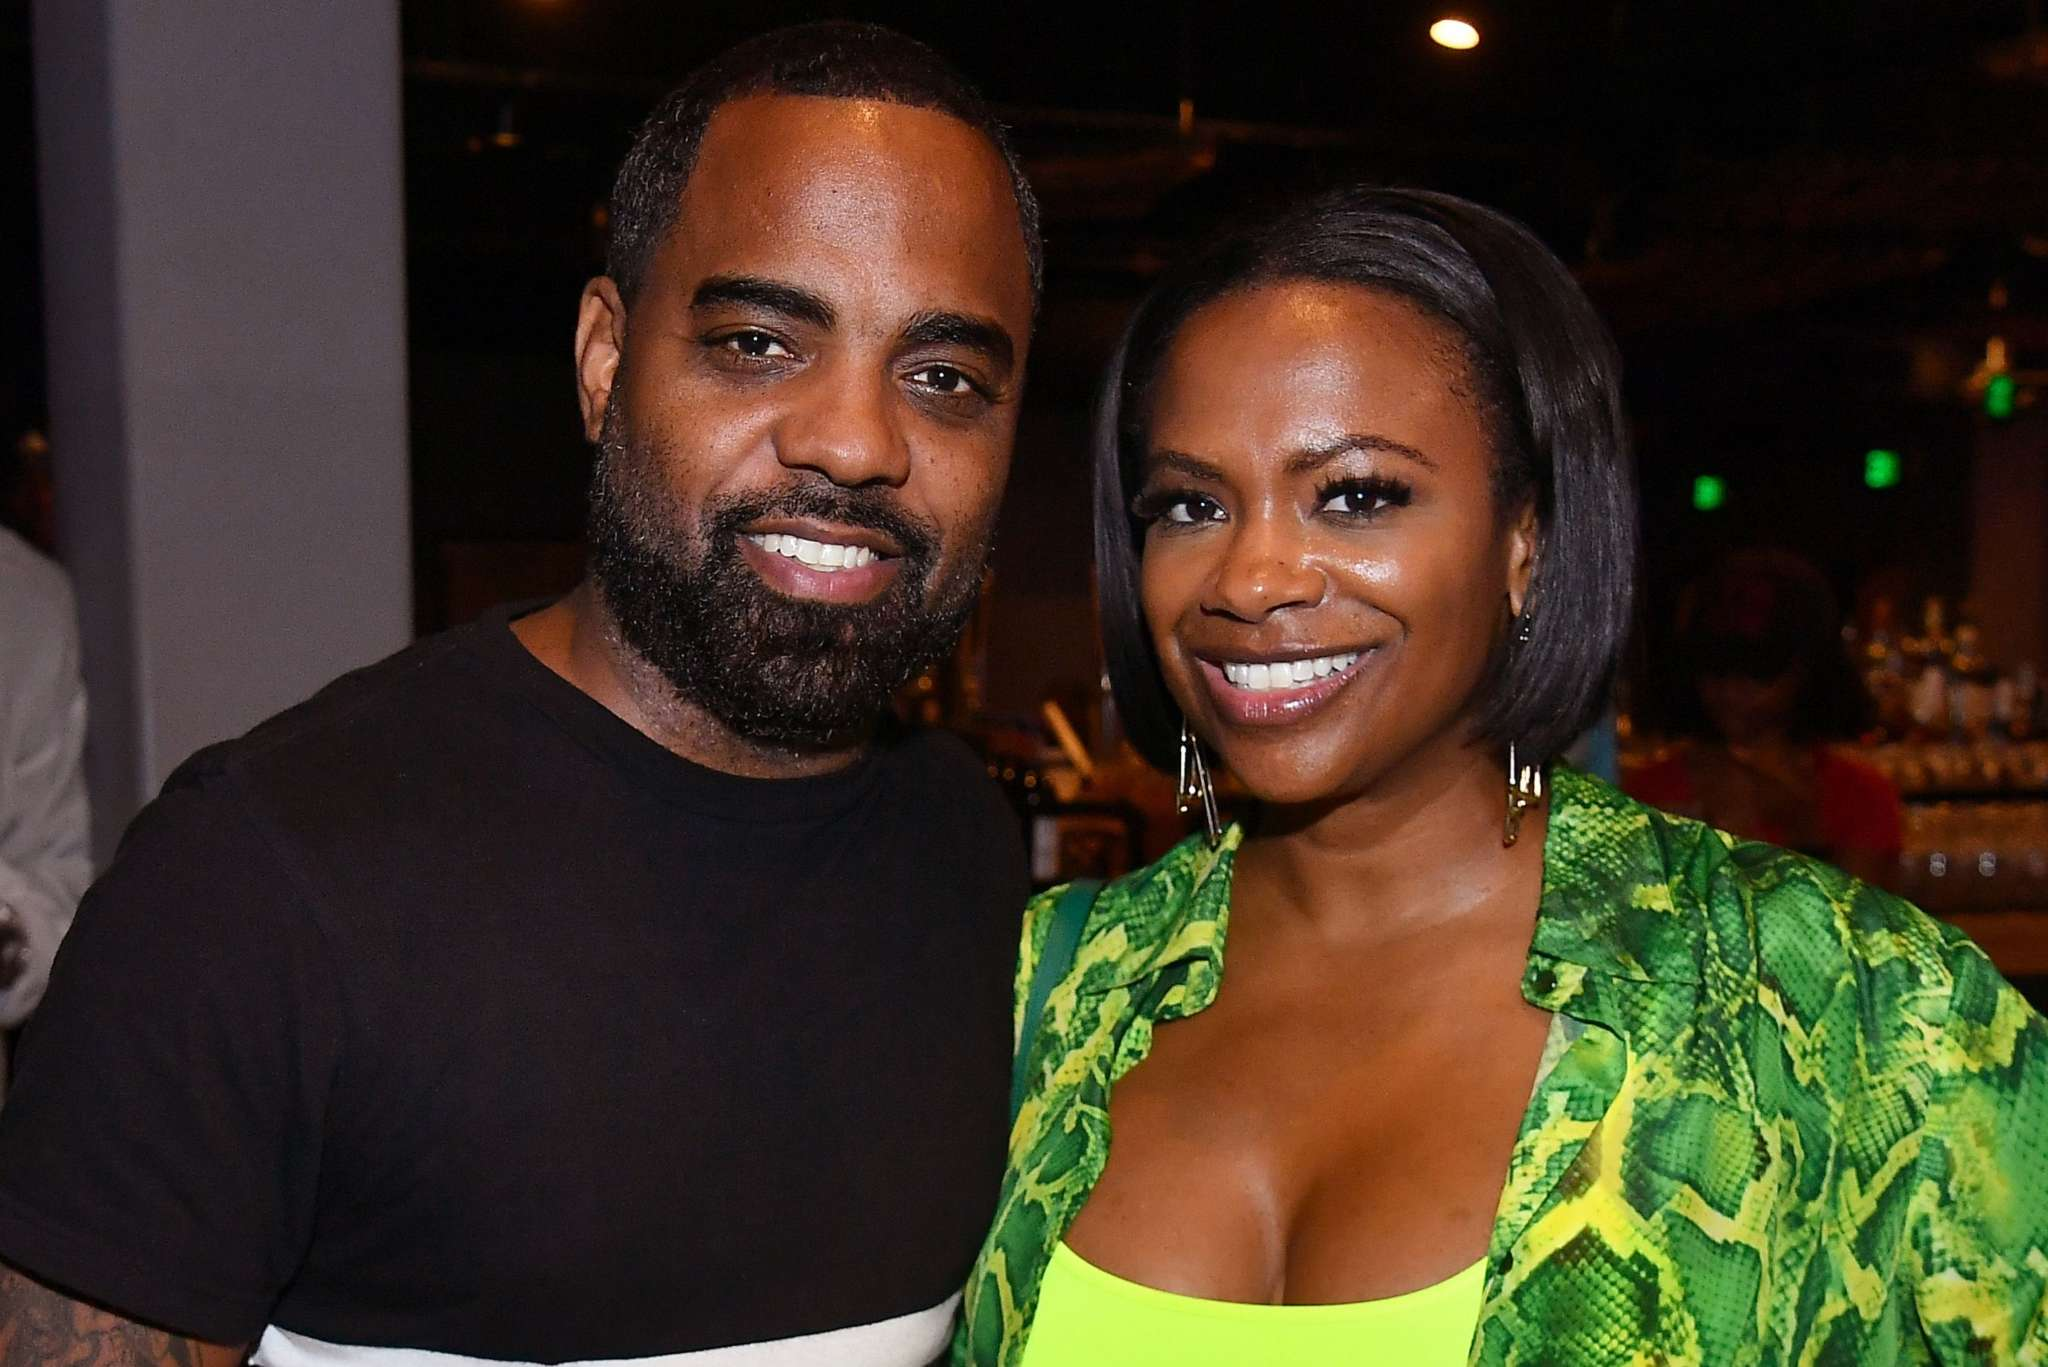 """kandi-burruss-wishes-a-happy-birthday-to-the-hardest-working-woman-she-knows"""